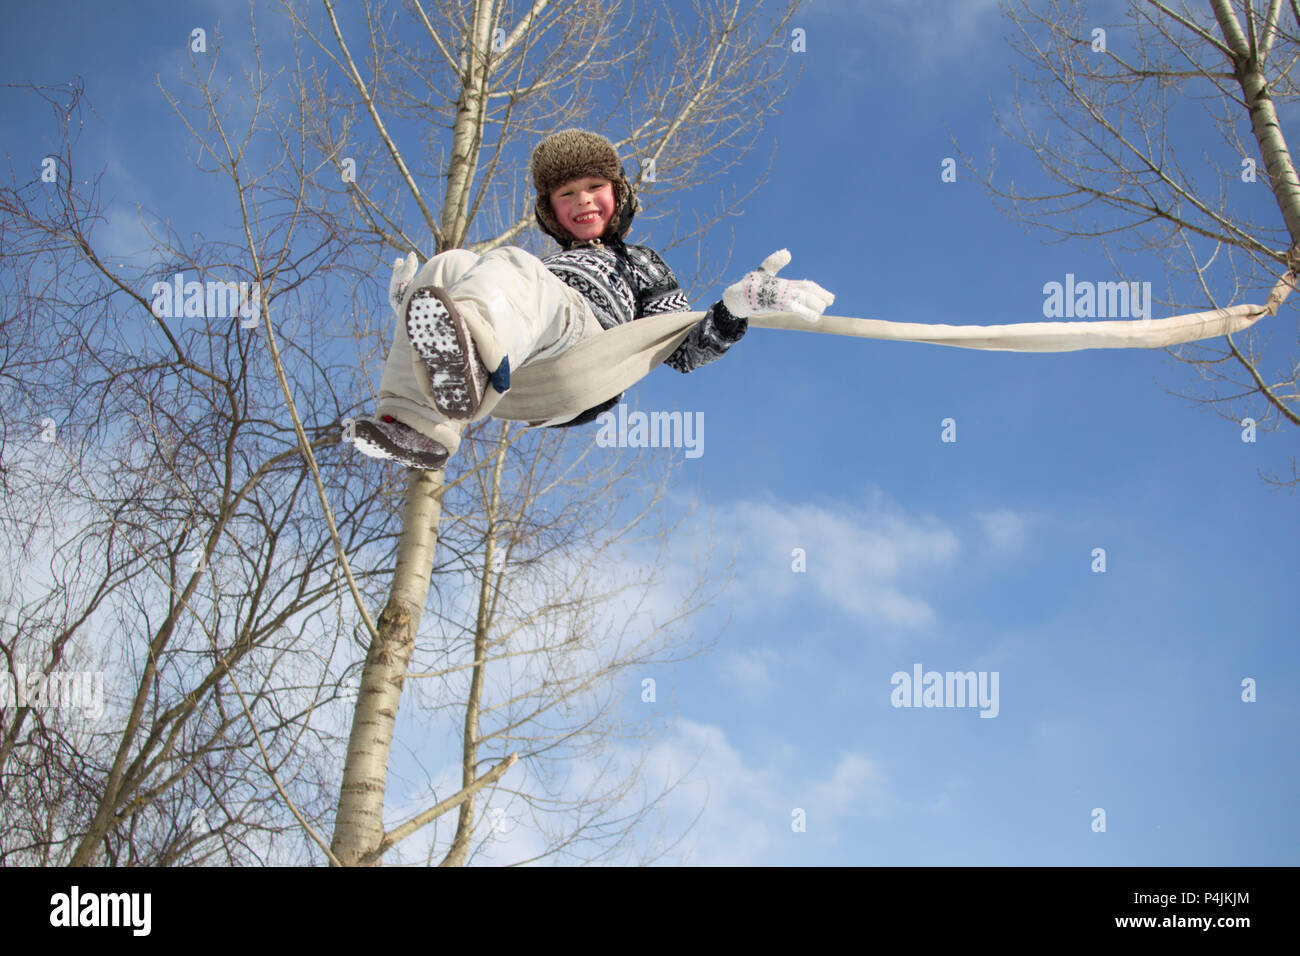 Child on the Rope Swing - Stock Image